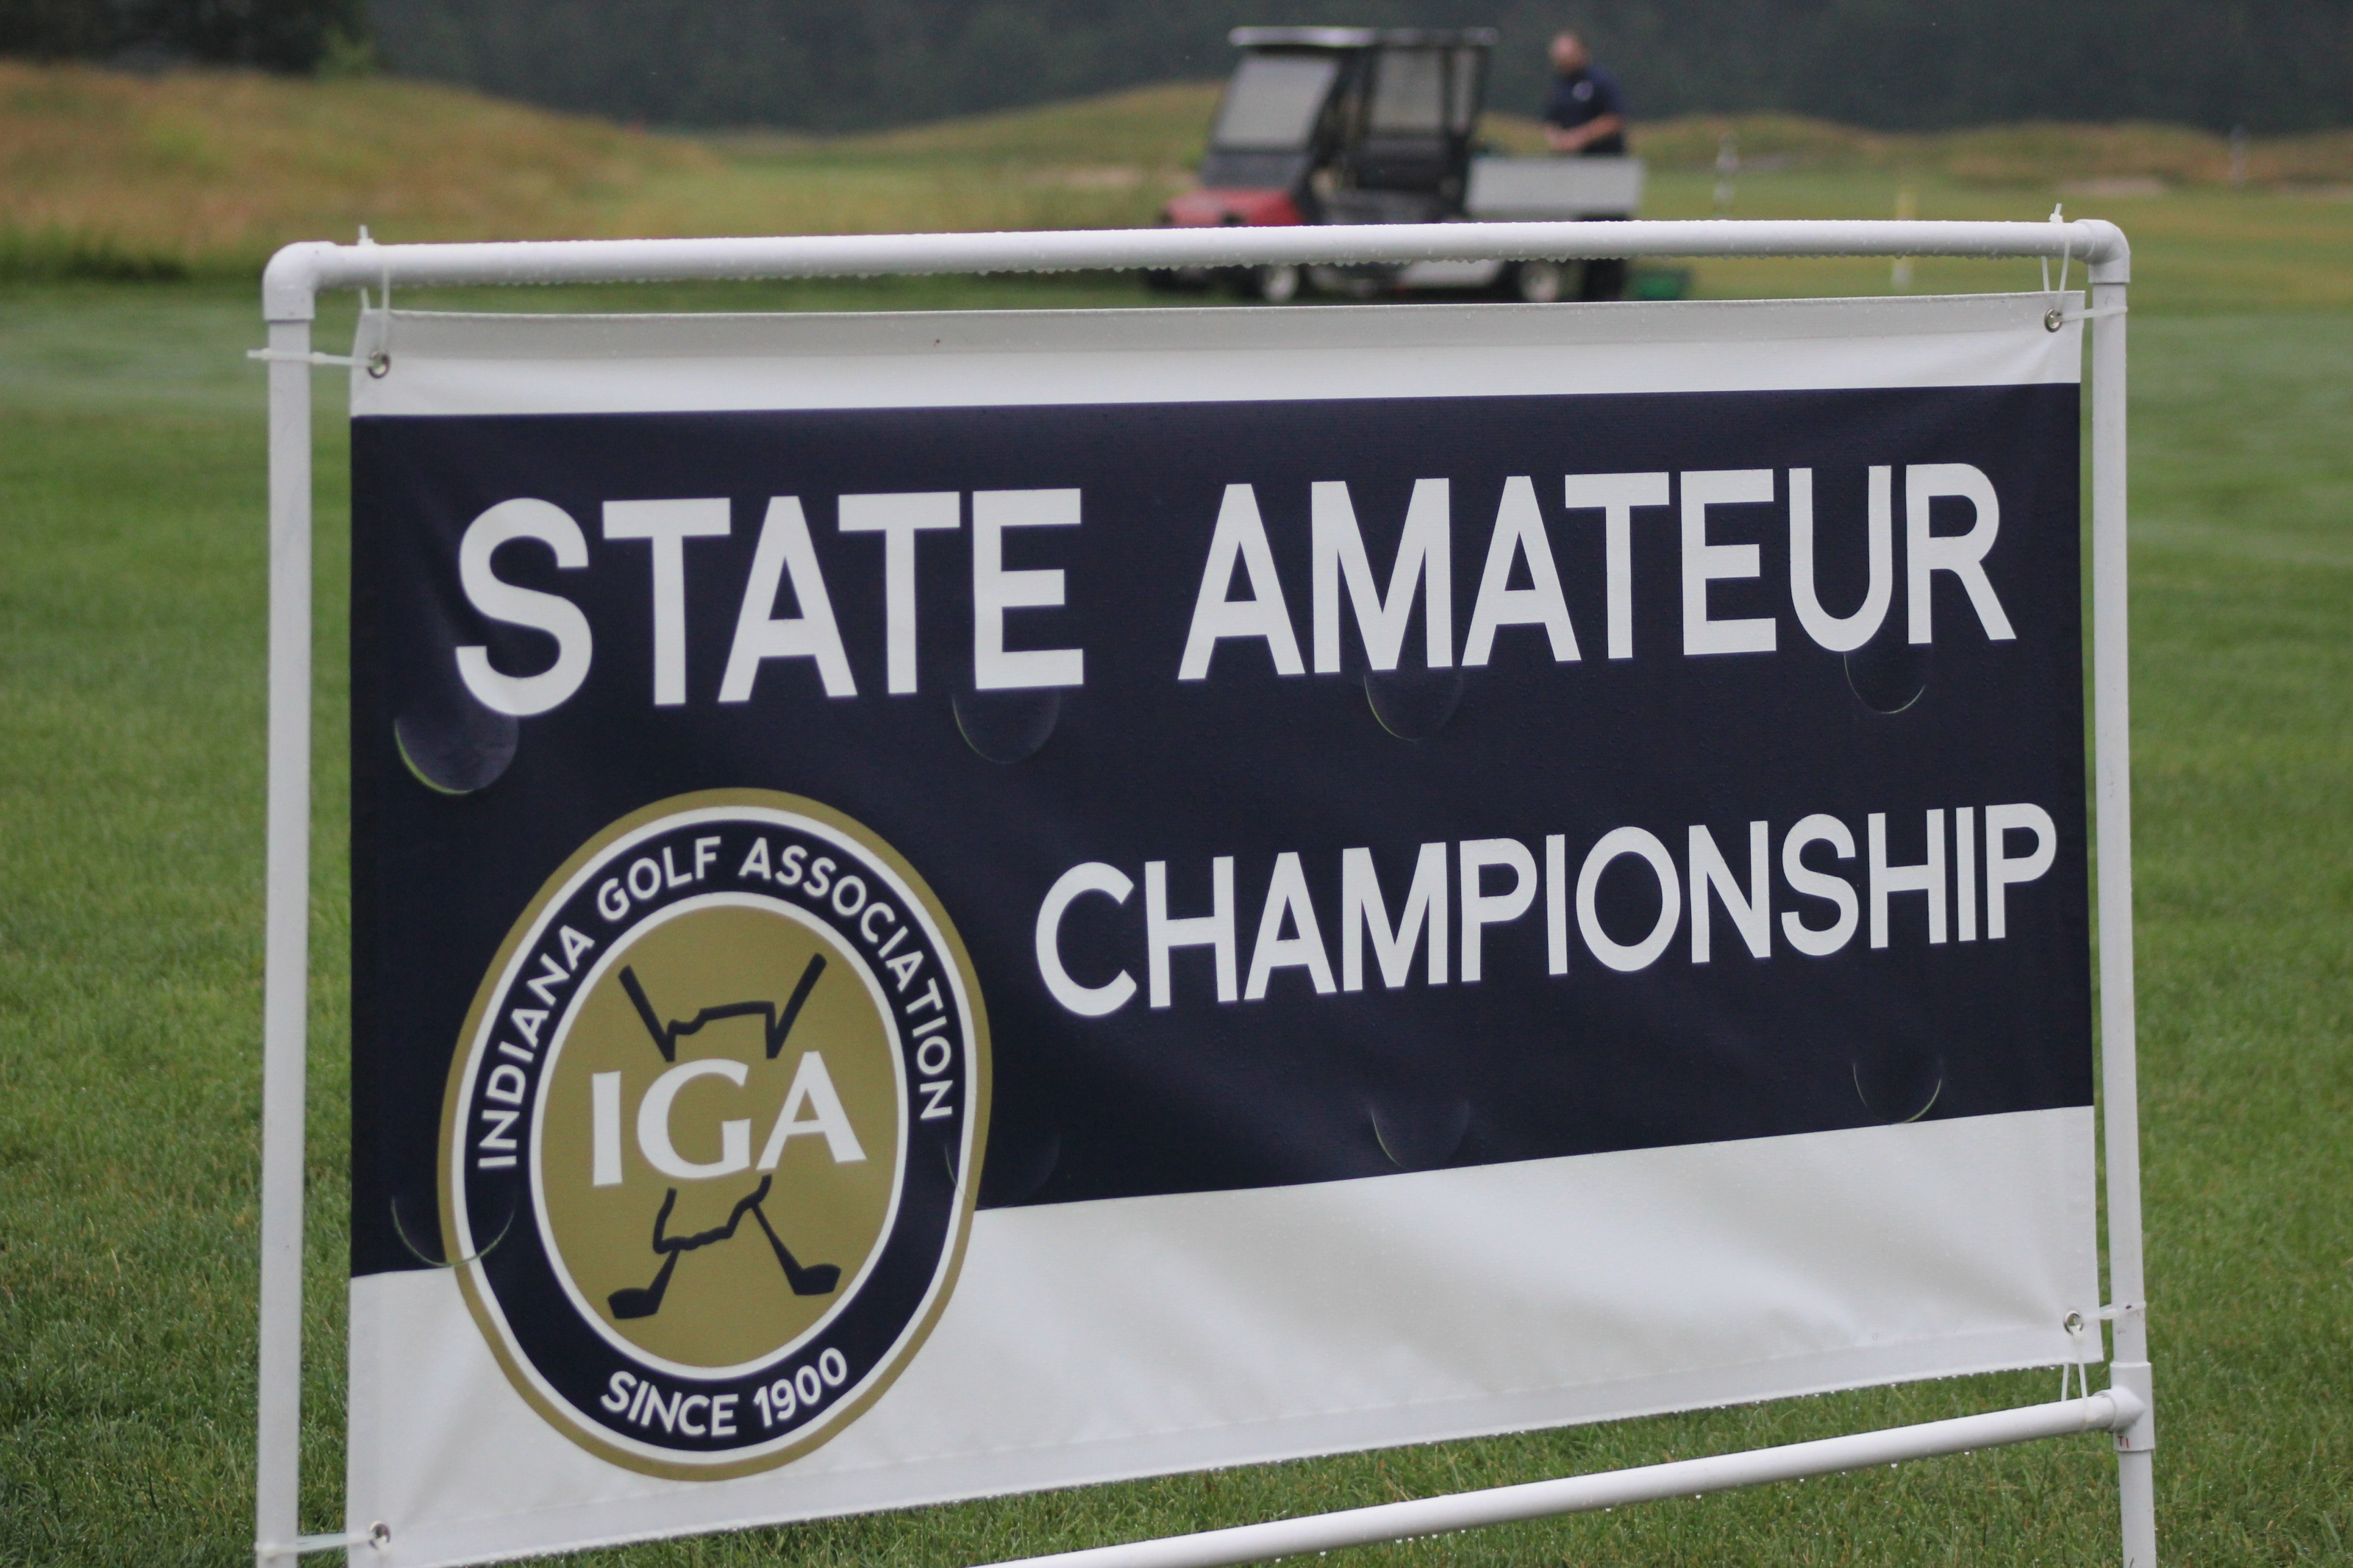 Round Three of Indiana Amateur Championship Suspended Due to Weather, Leaders Sit at 7-Under-Par